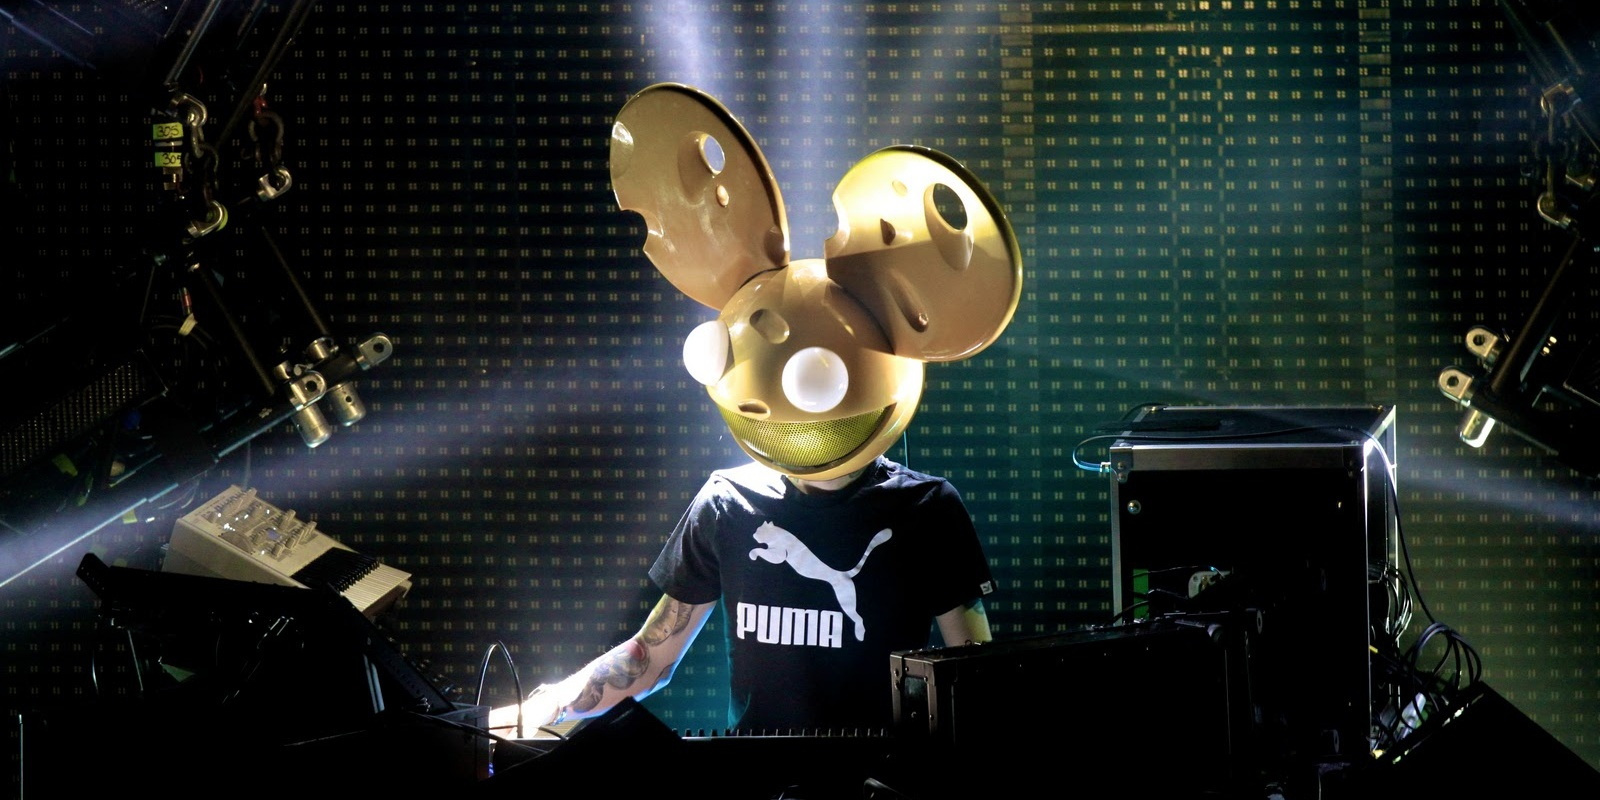 Ultra Singapore confirms deadmau5 as its first headliner